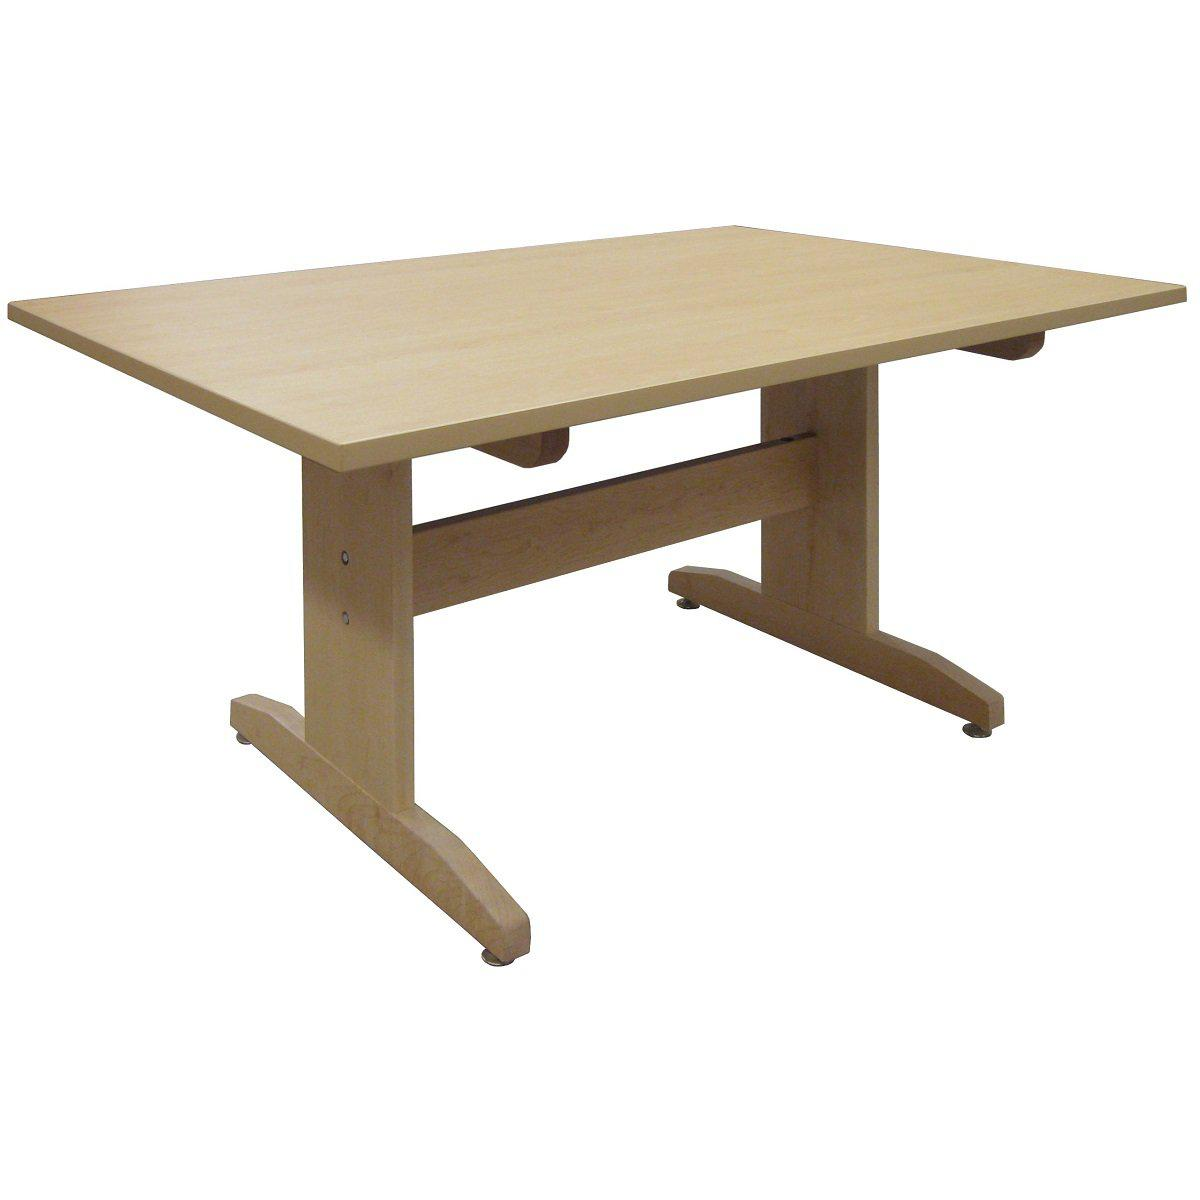 "Art Table, 42"" x 60"" Maple Grain Patterned HPL Top, 30"" High"